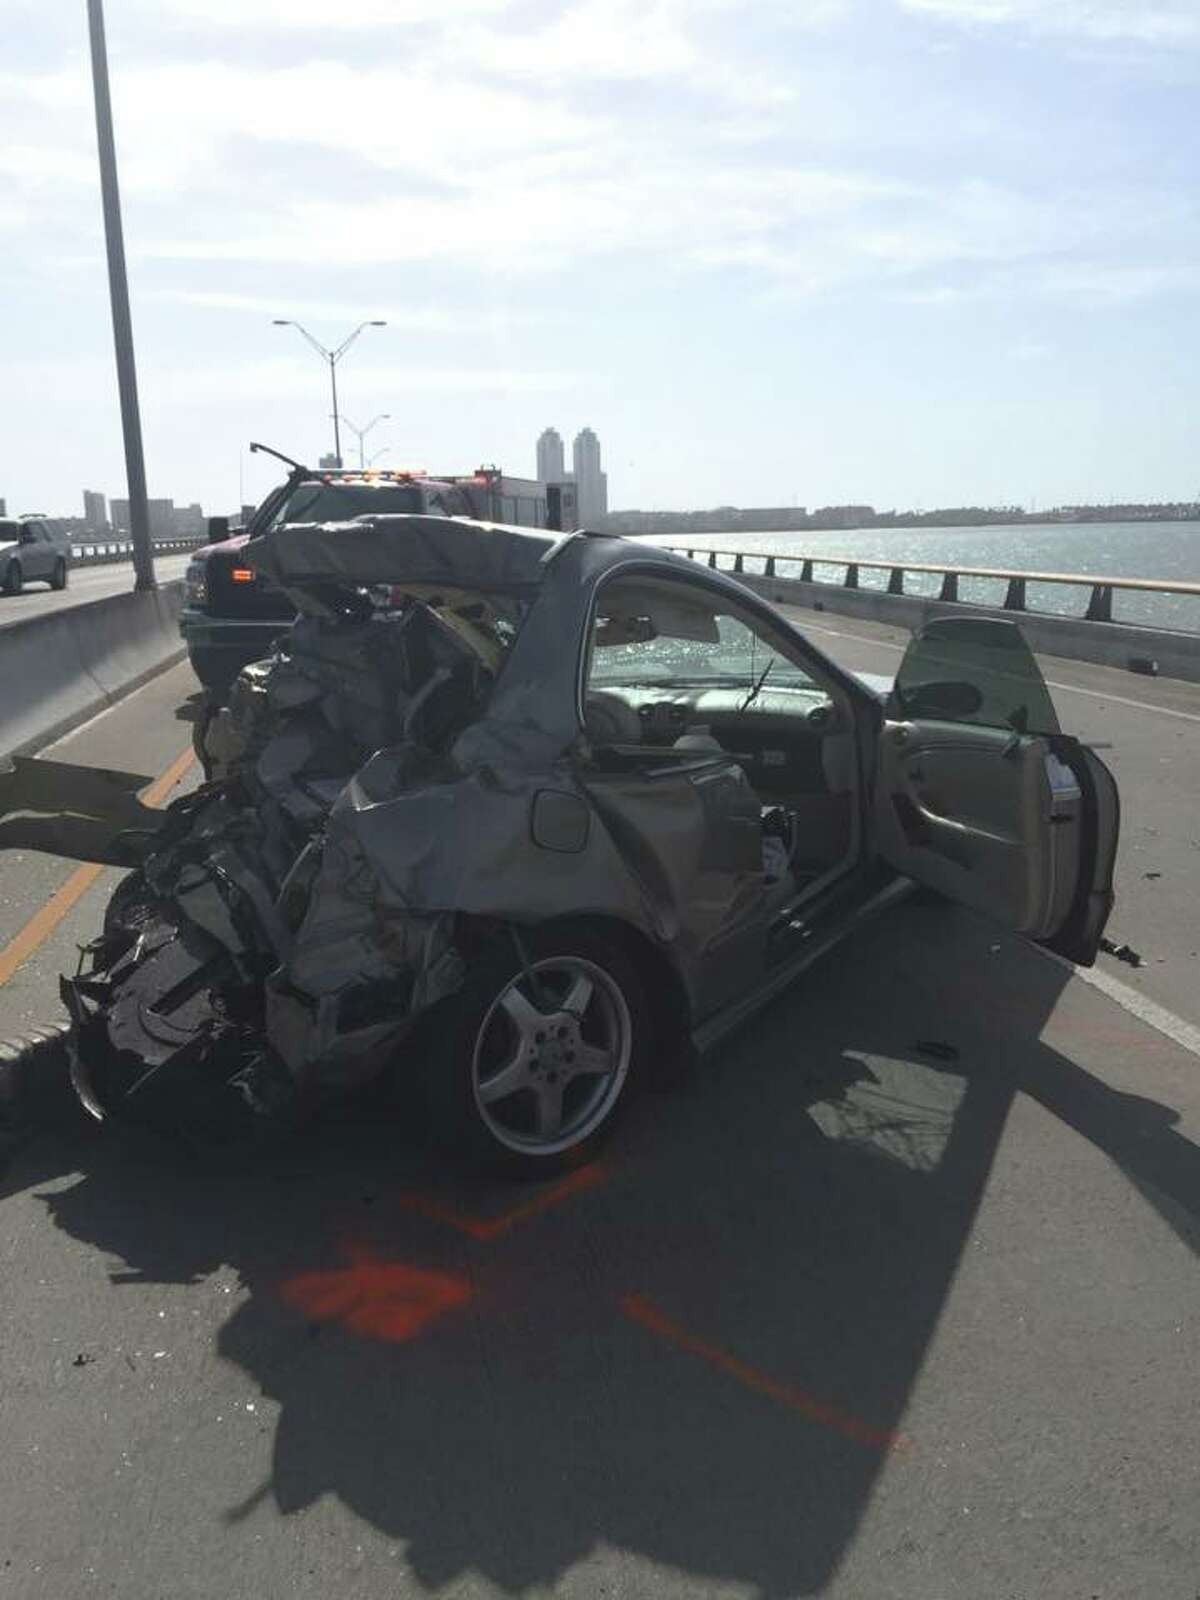 A woman died August 19, 2016 after the grey Mercedes-Benz she was traveling was rear-ended by a linen service truck on the Queen Isabella Memorial Causeway in South Padre Island.